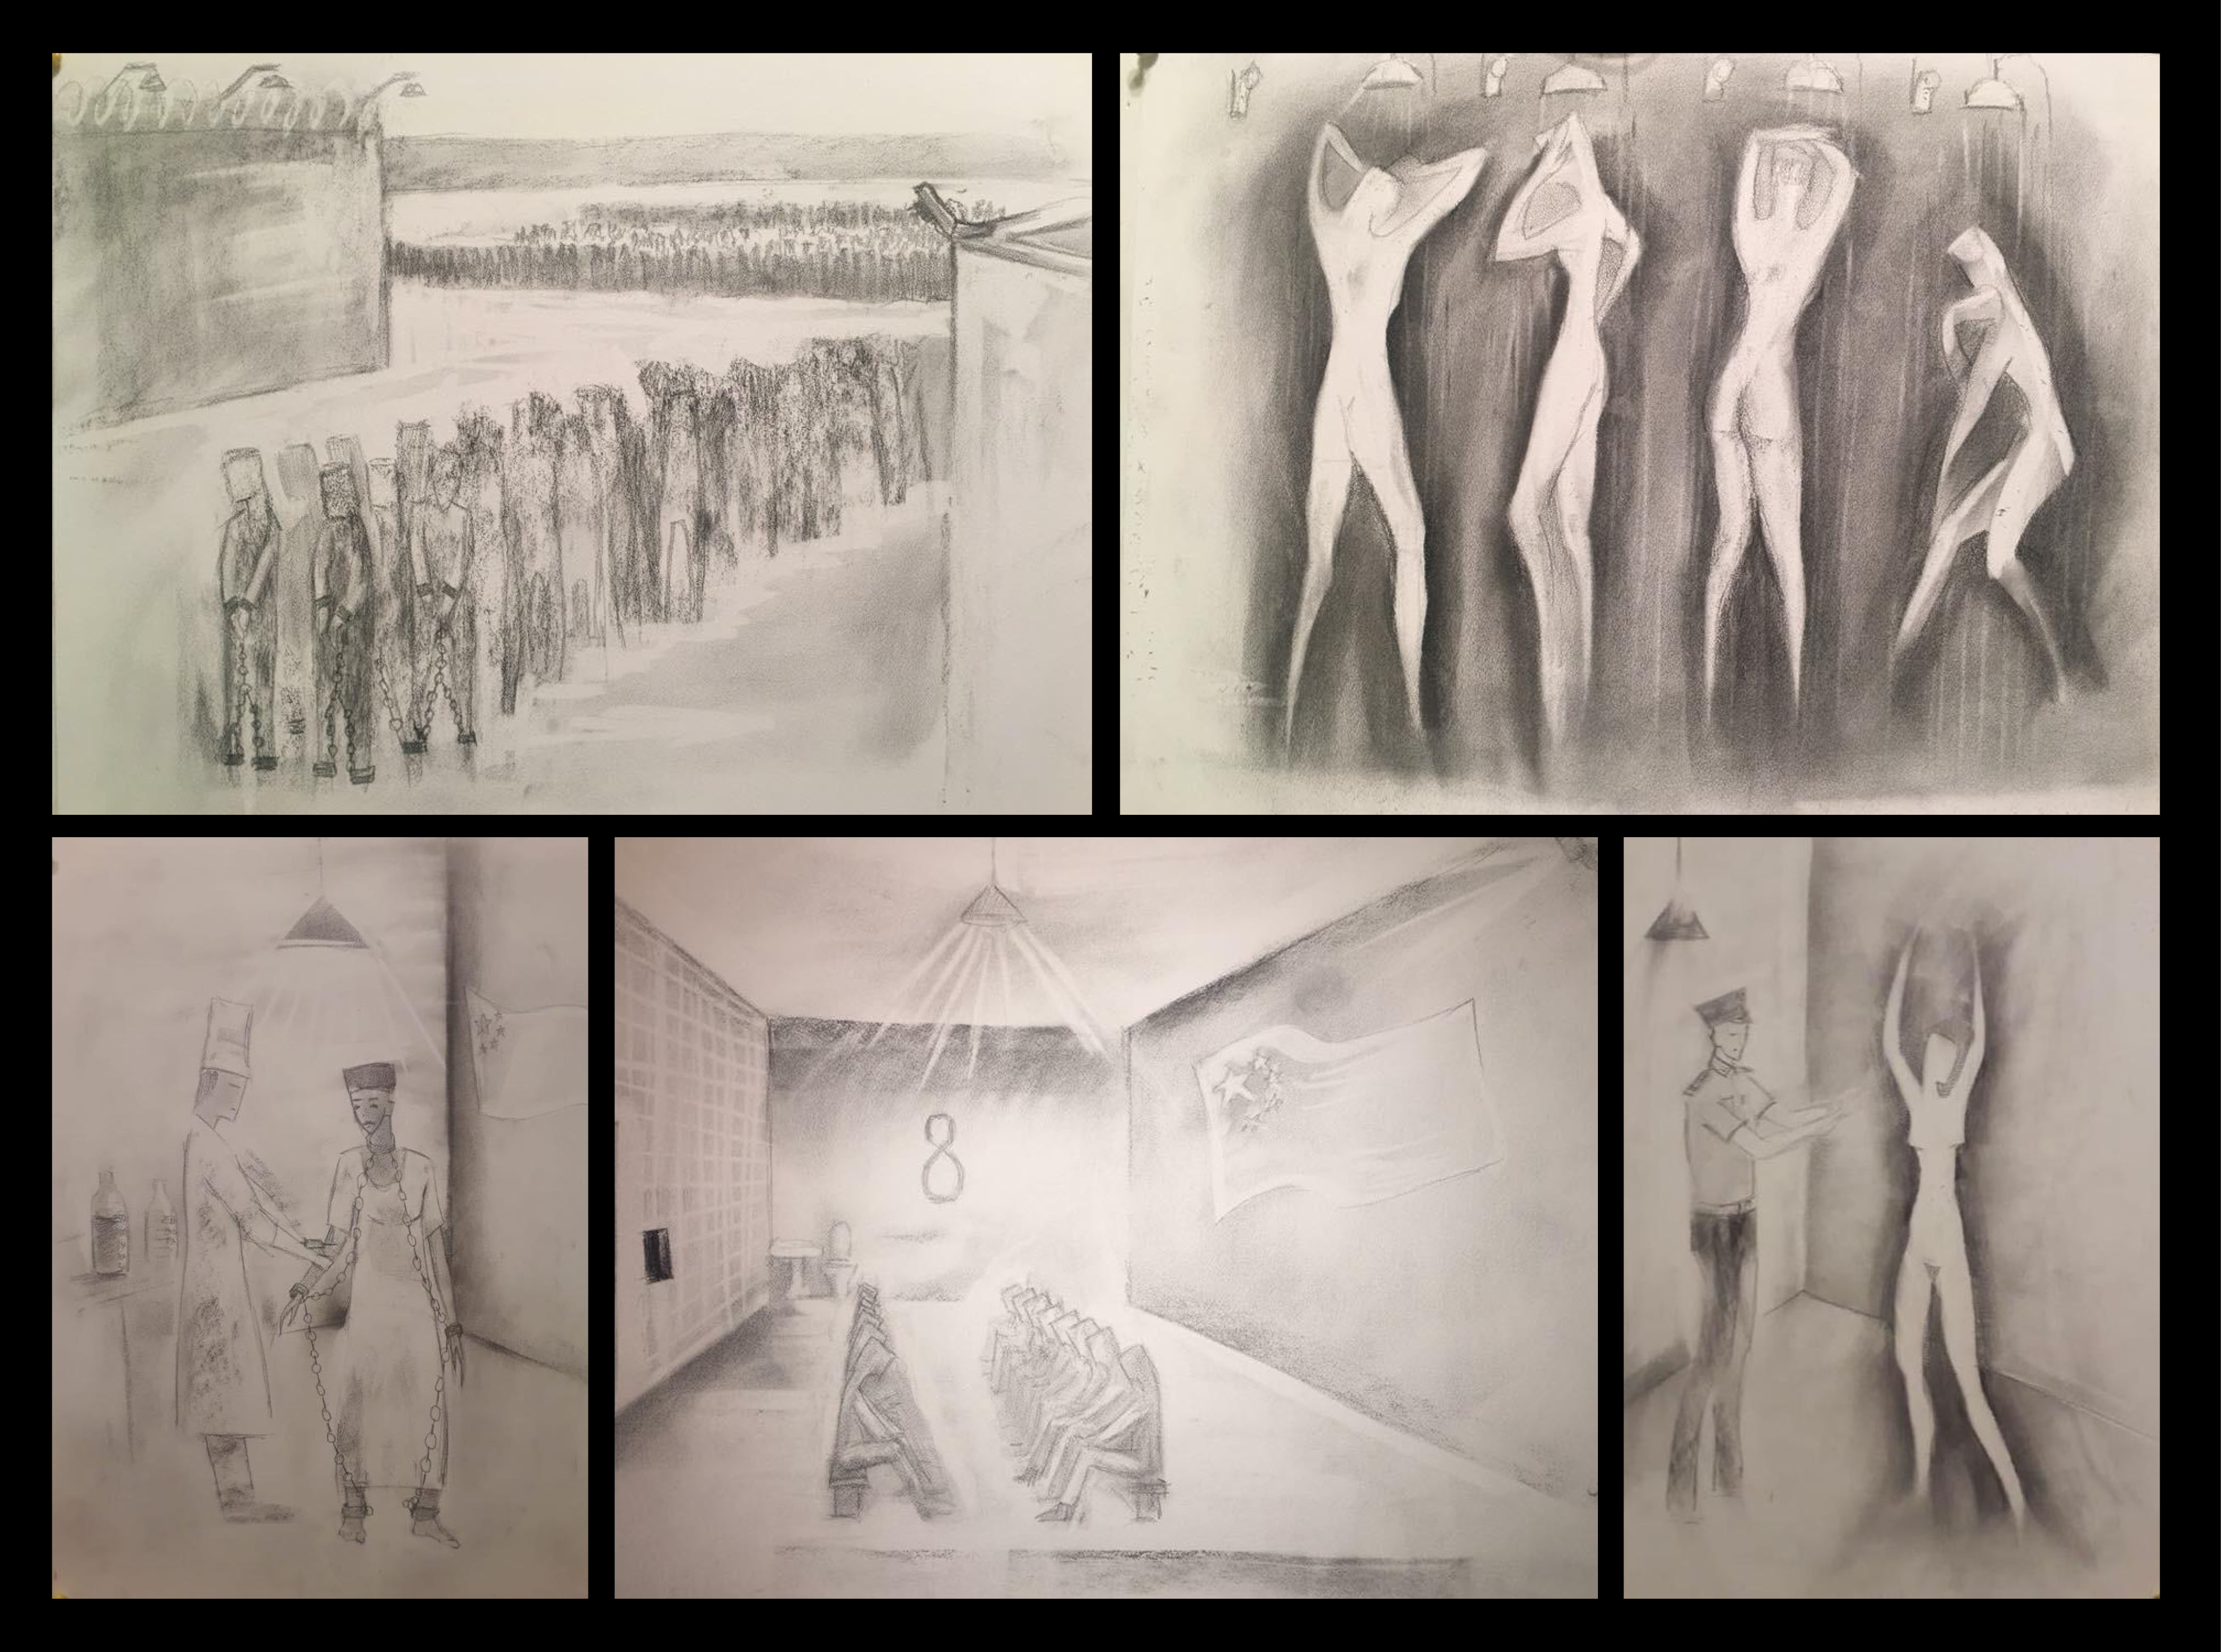 Drawings by Sophia, who asked to use a pseudonym, depict scenes inside a camp in Xinjiang.